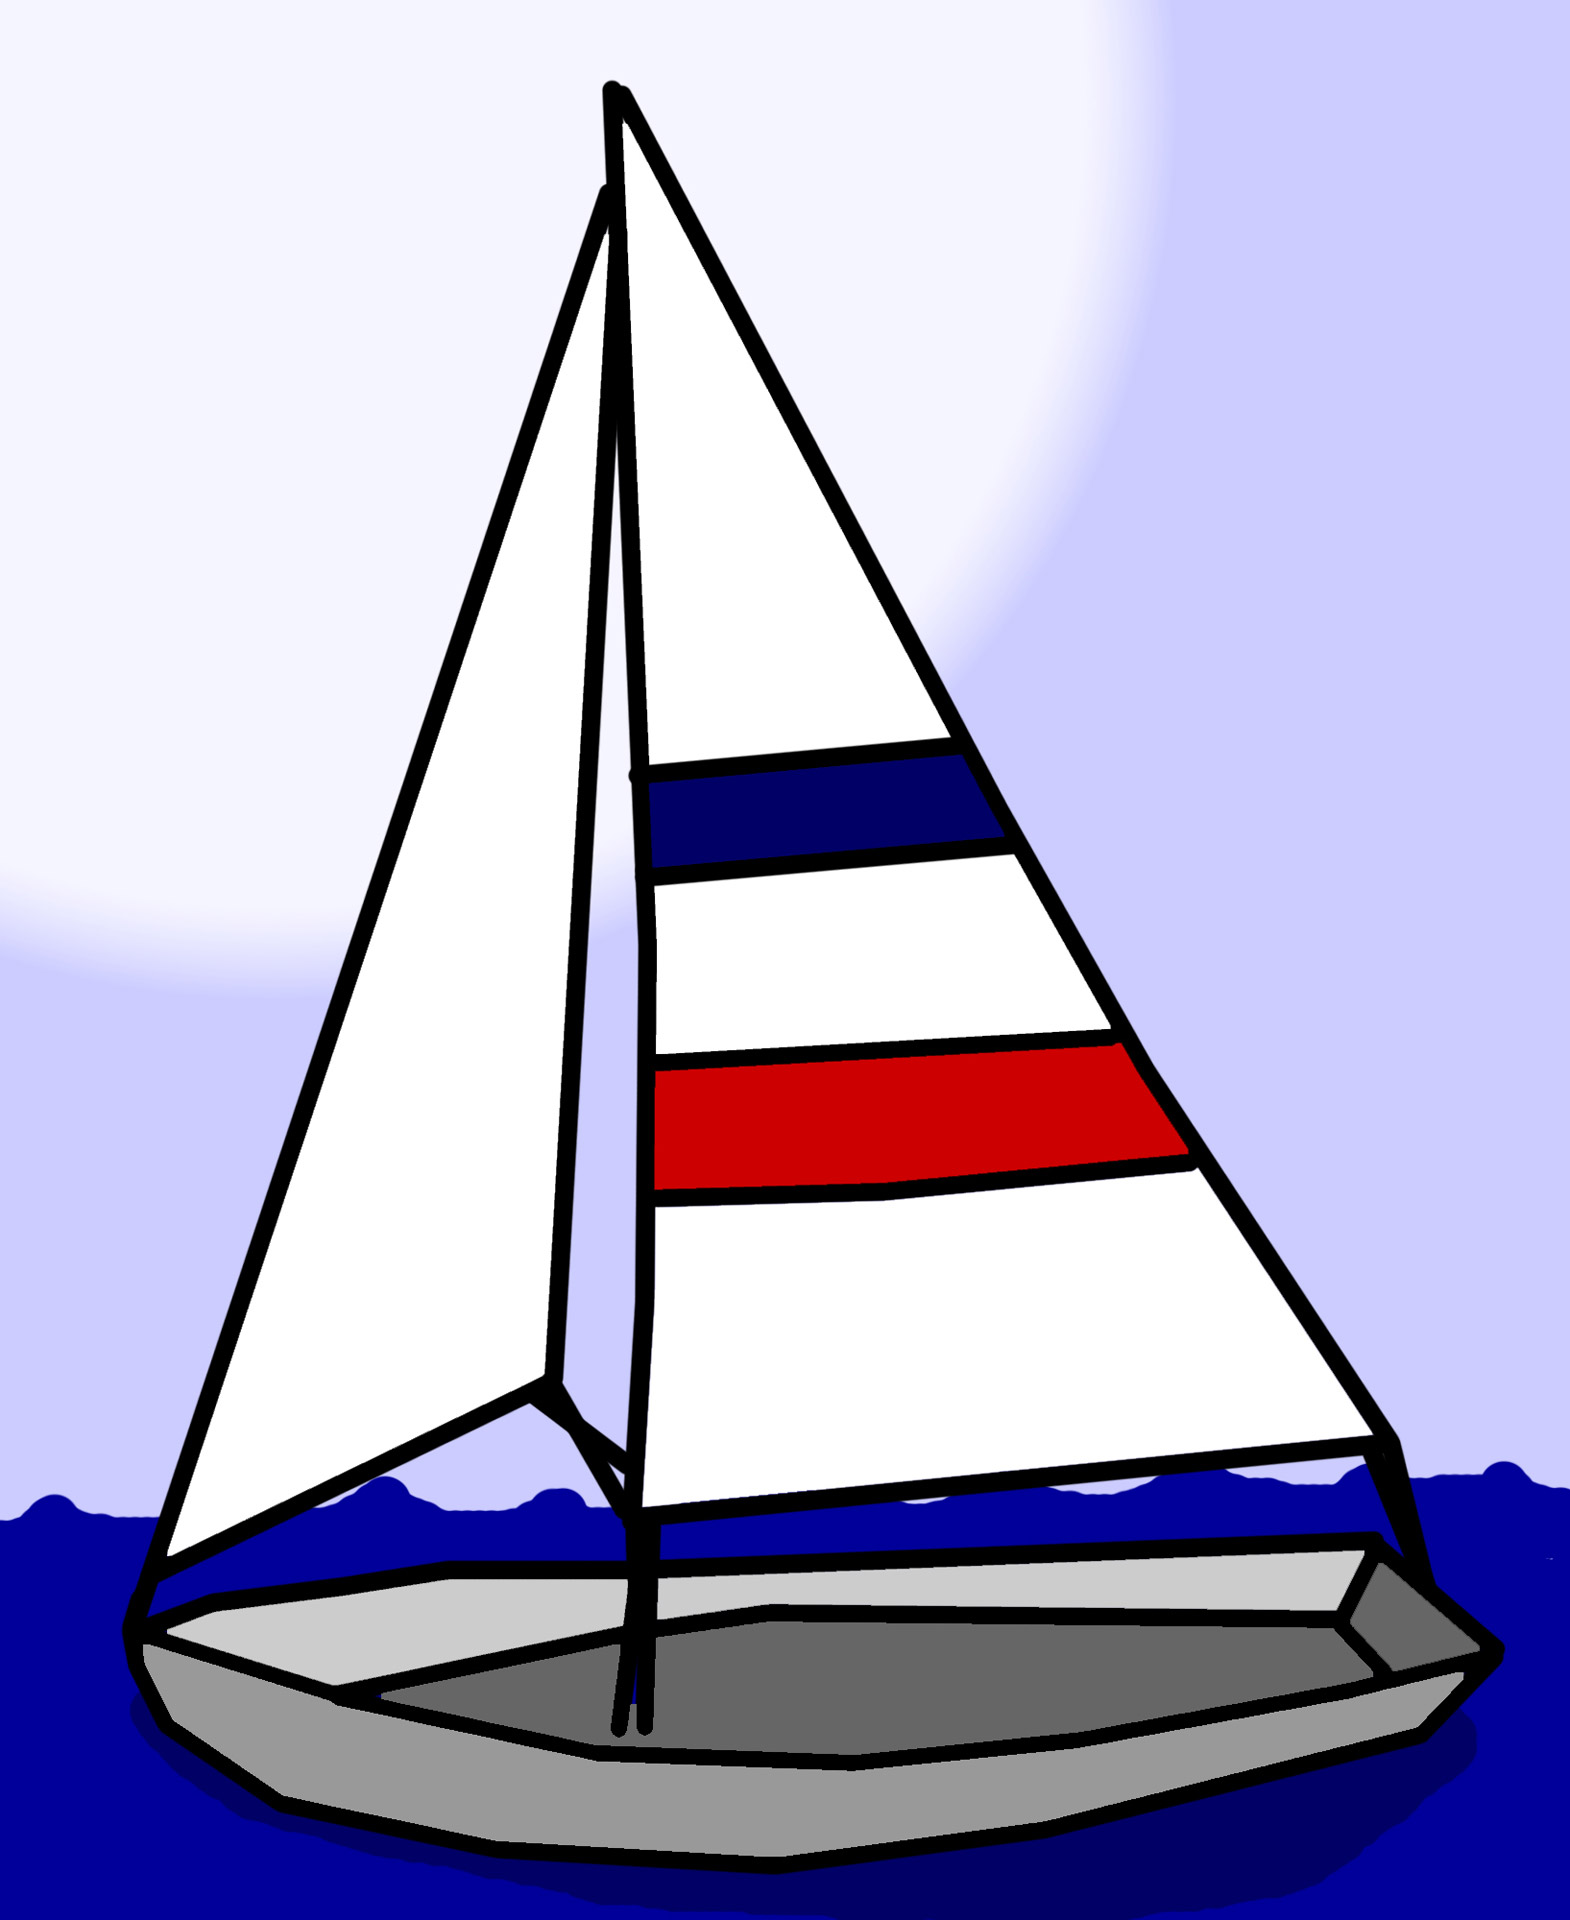 Sailboat clipart 0 sailboat boat free clip art 2 2